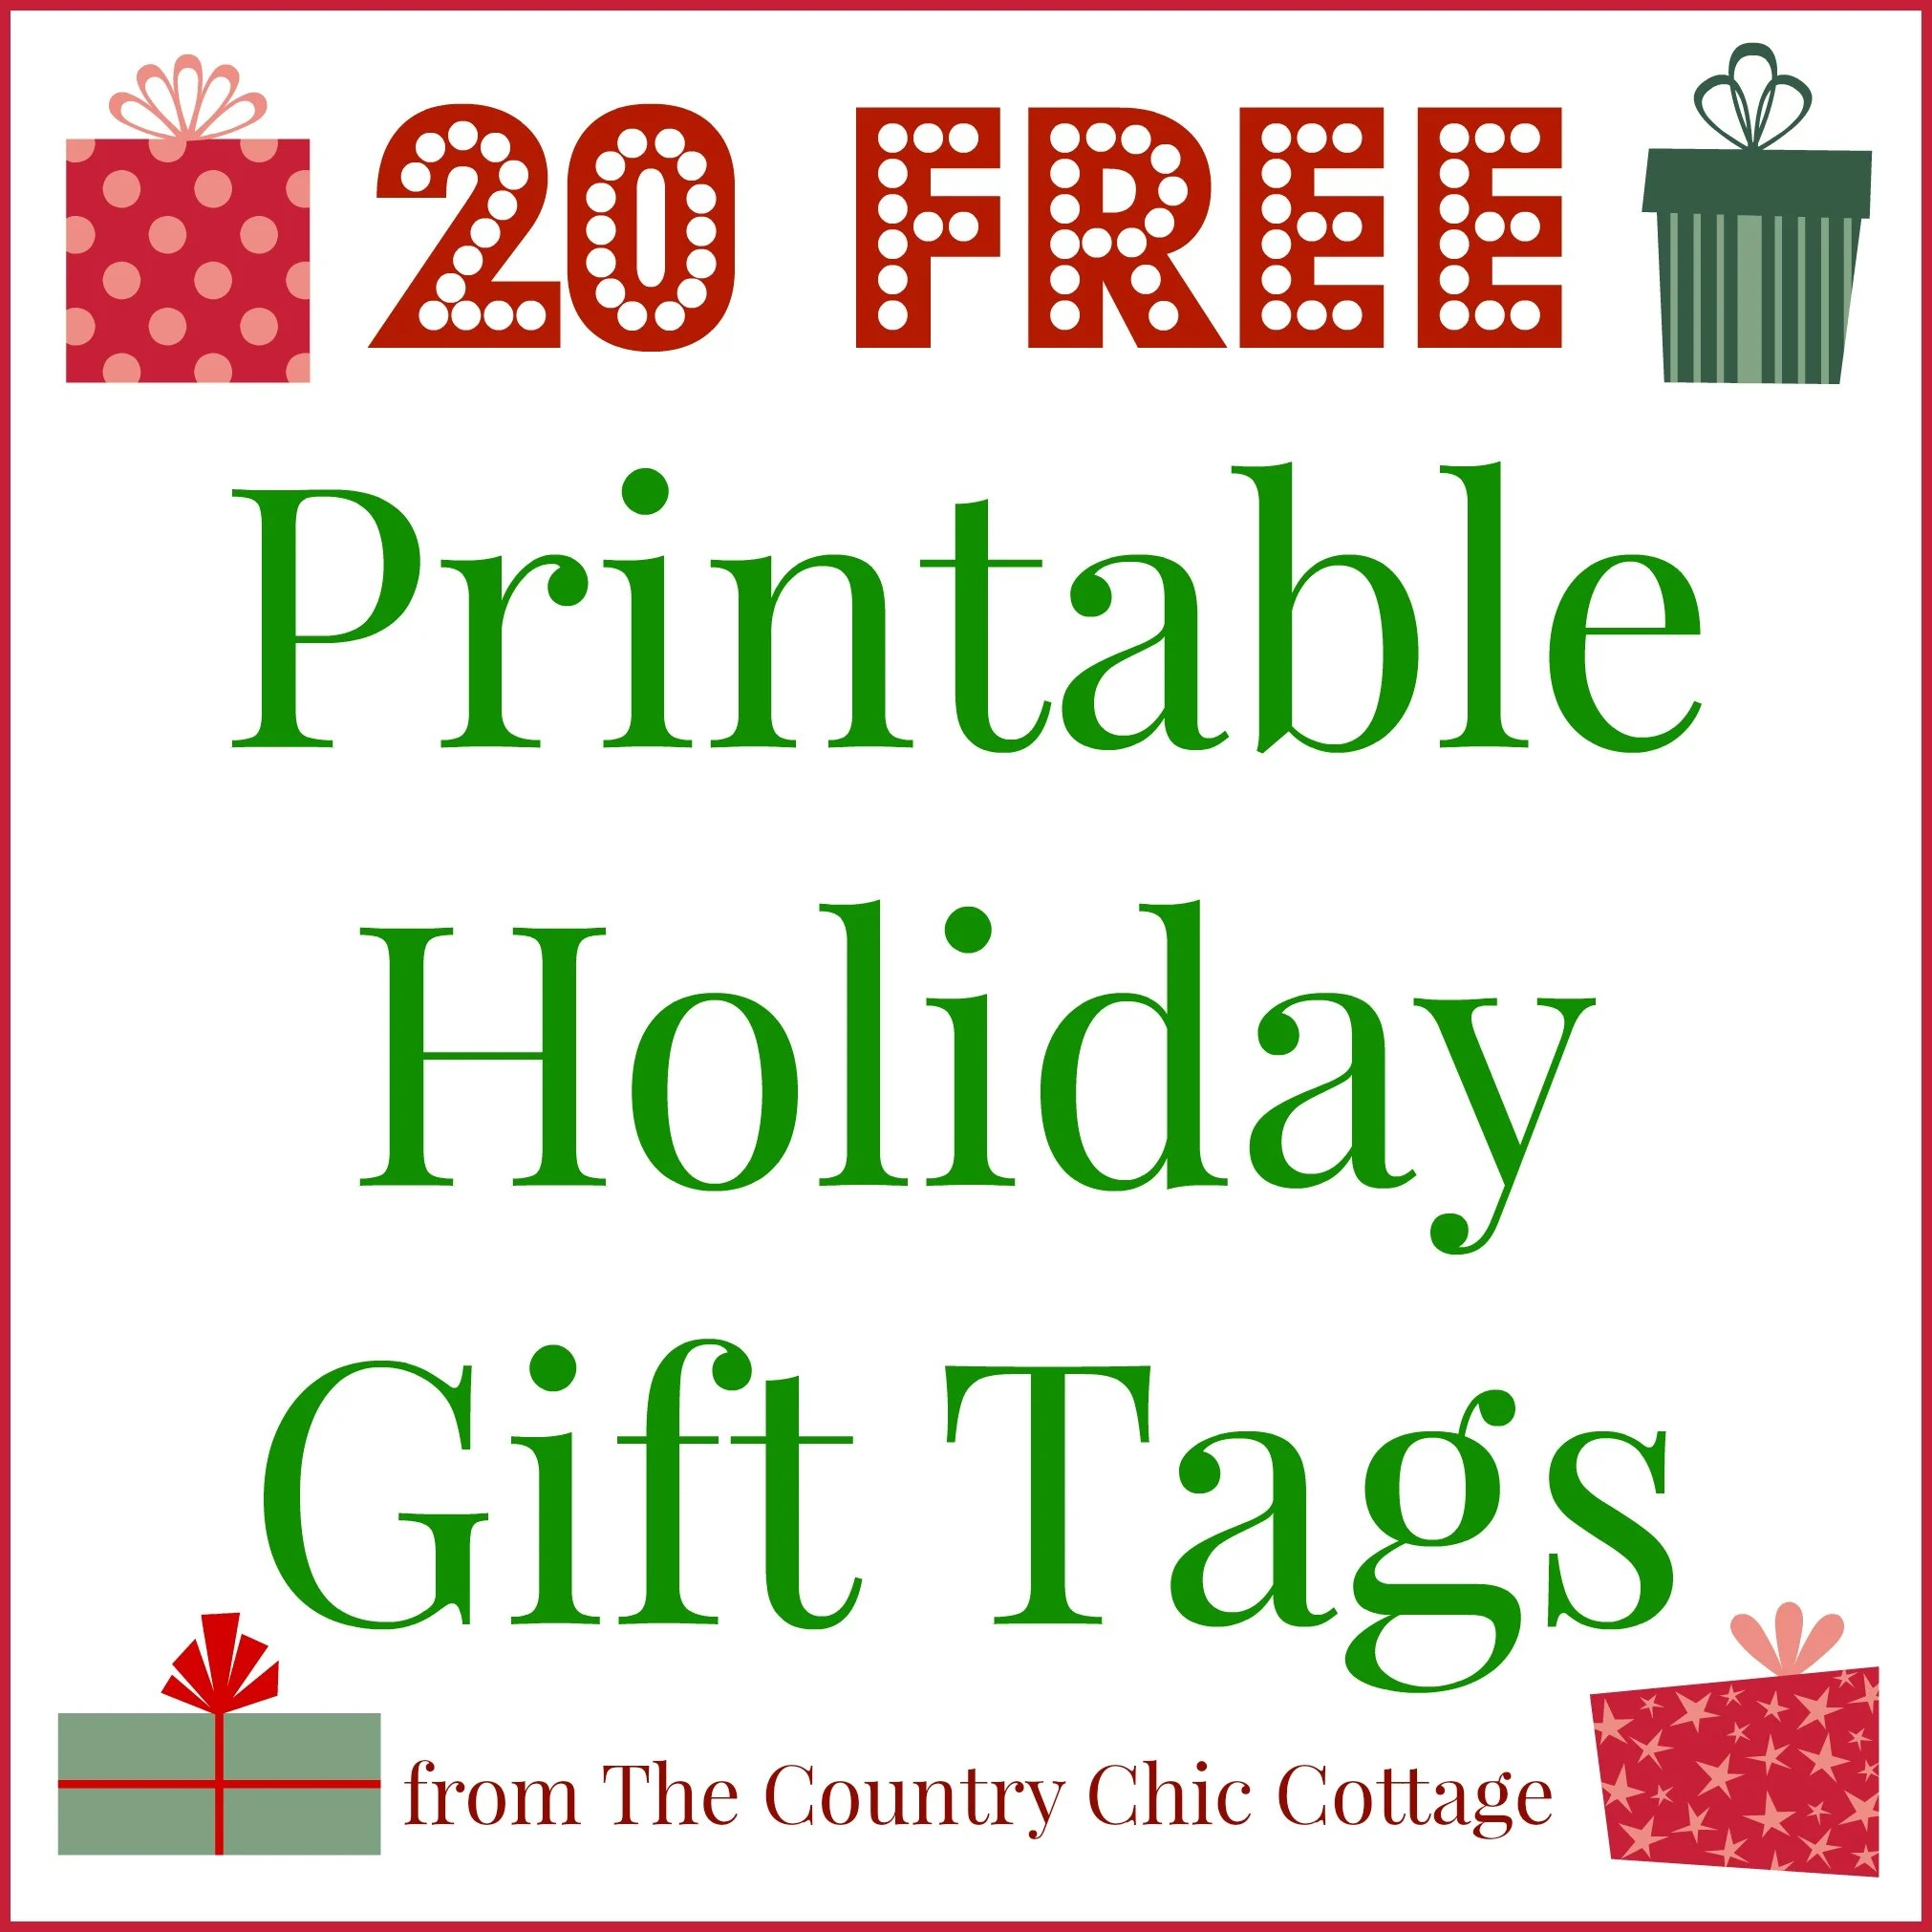 Christmas Gifts For Free